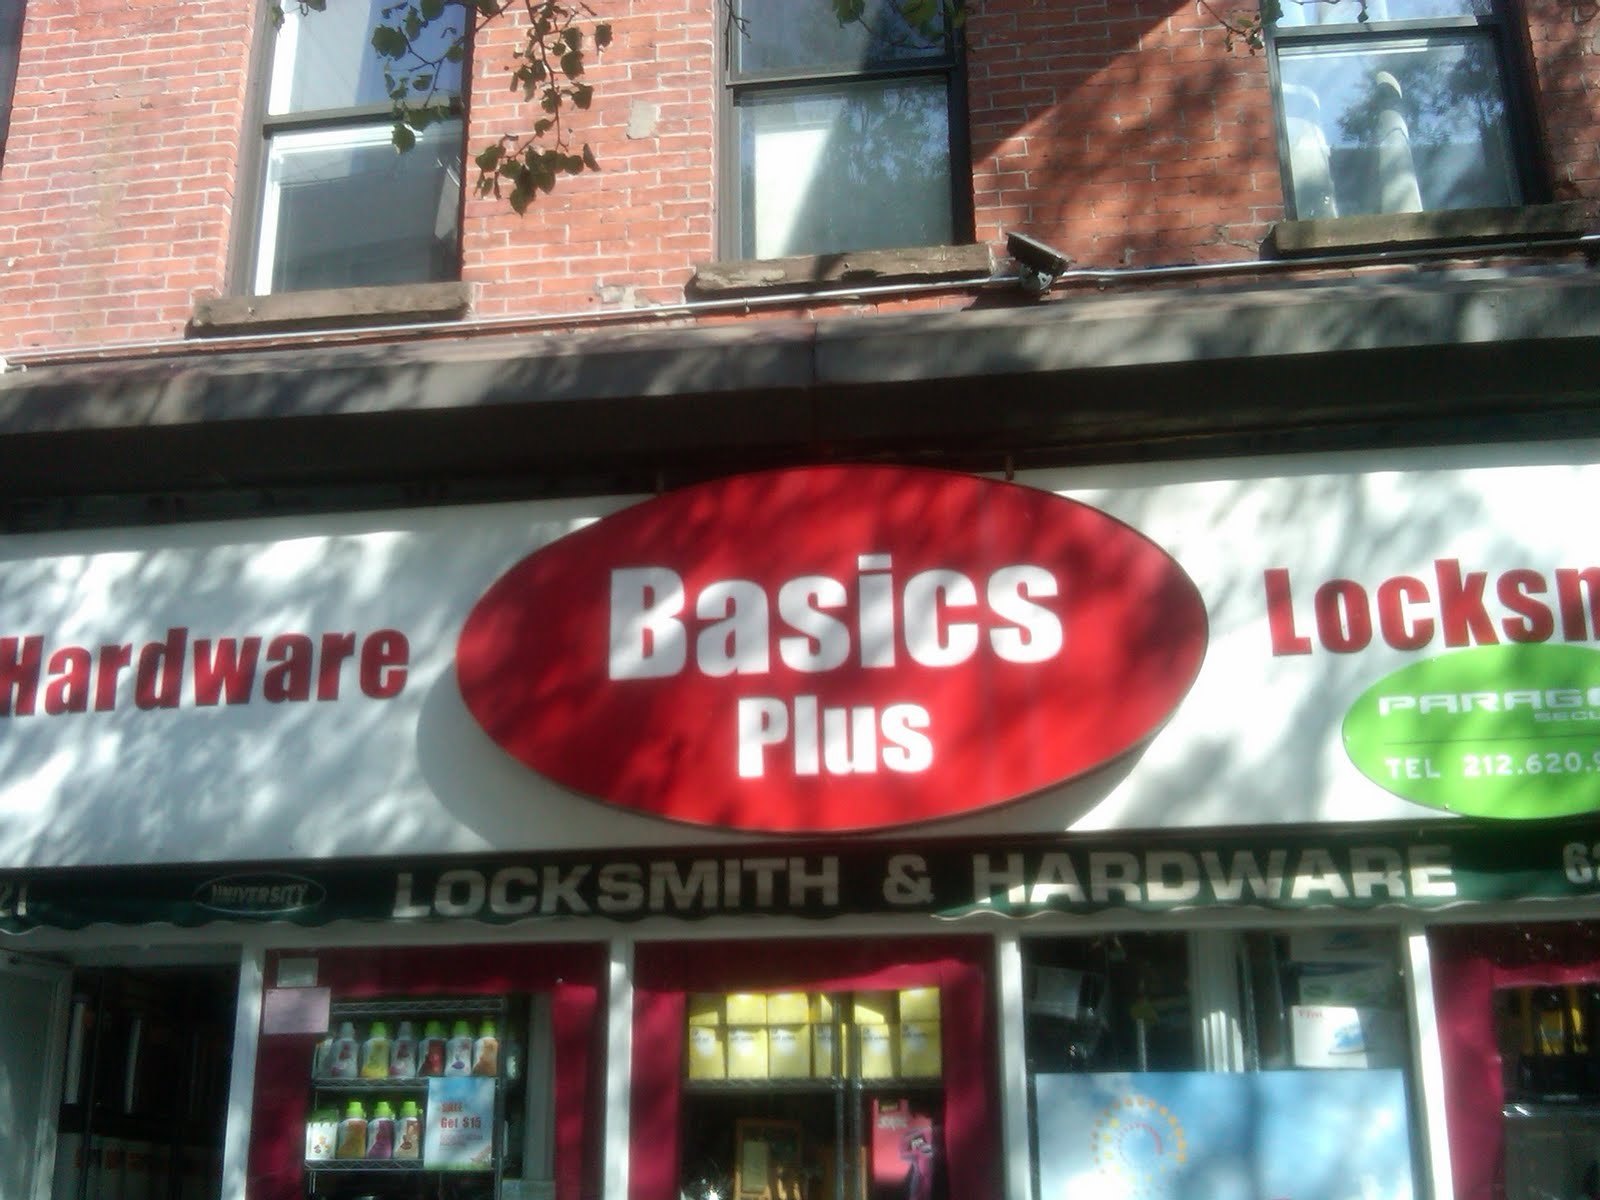 Find 11 Basics Plus in New York, New York. List of Basics Plus store locations, business hours, driving maps, phone numbers and more.